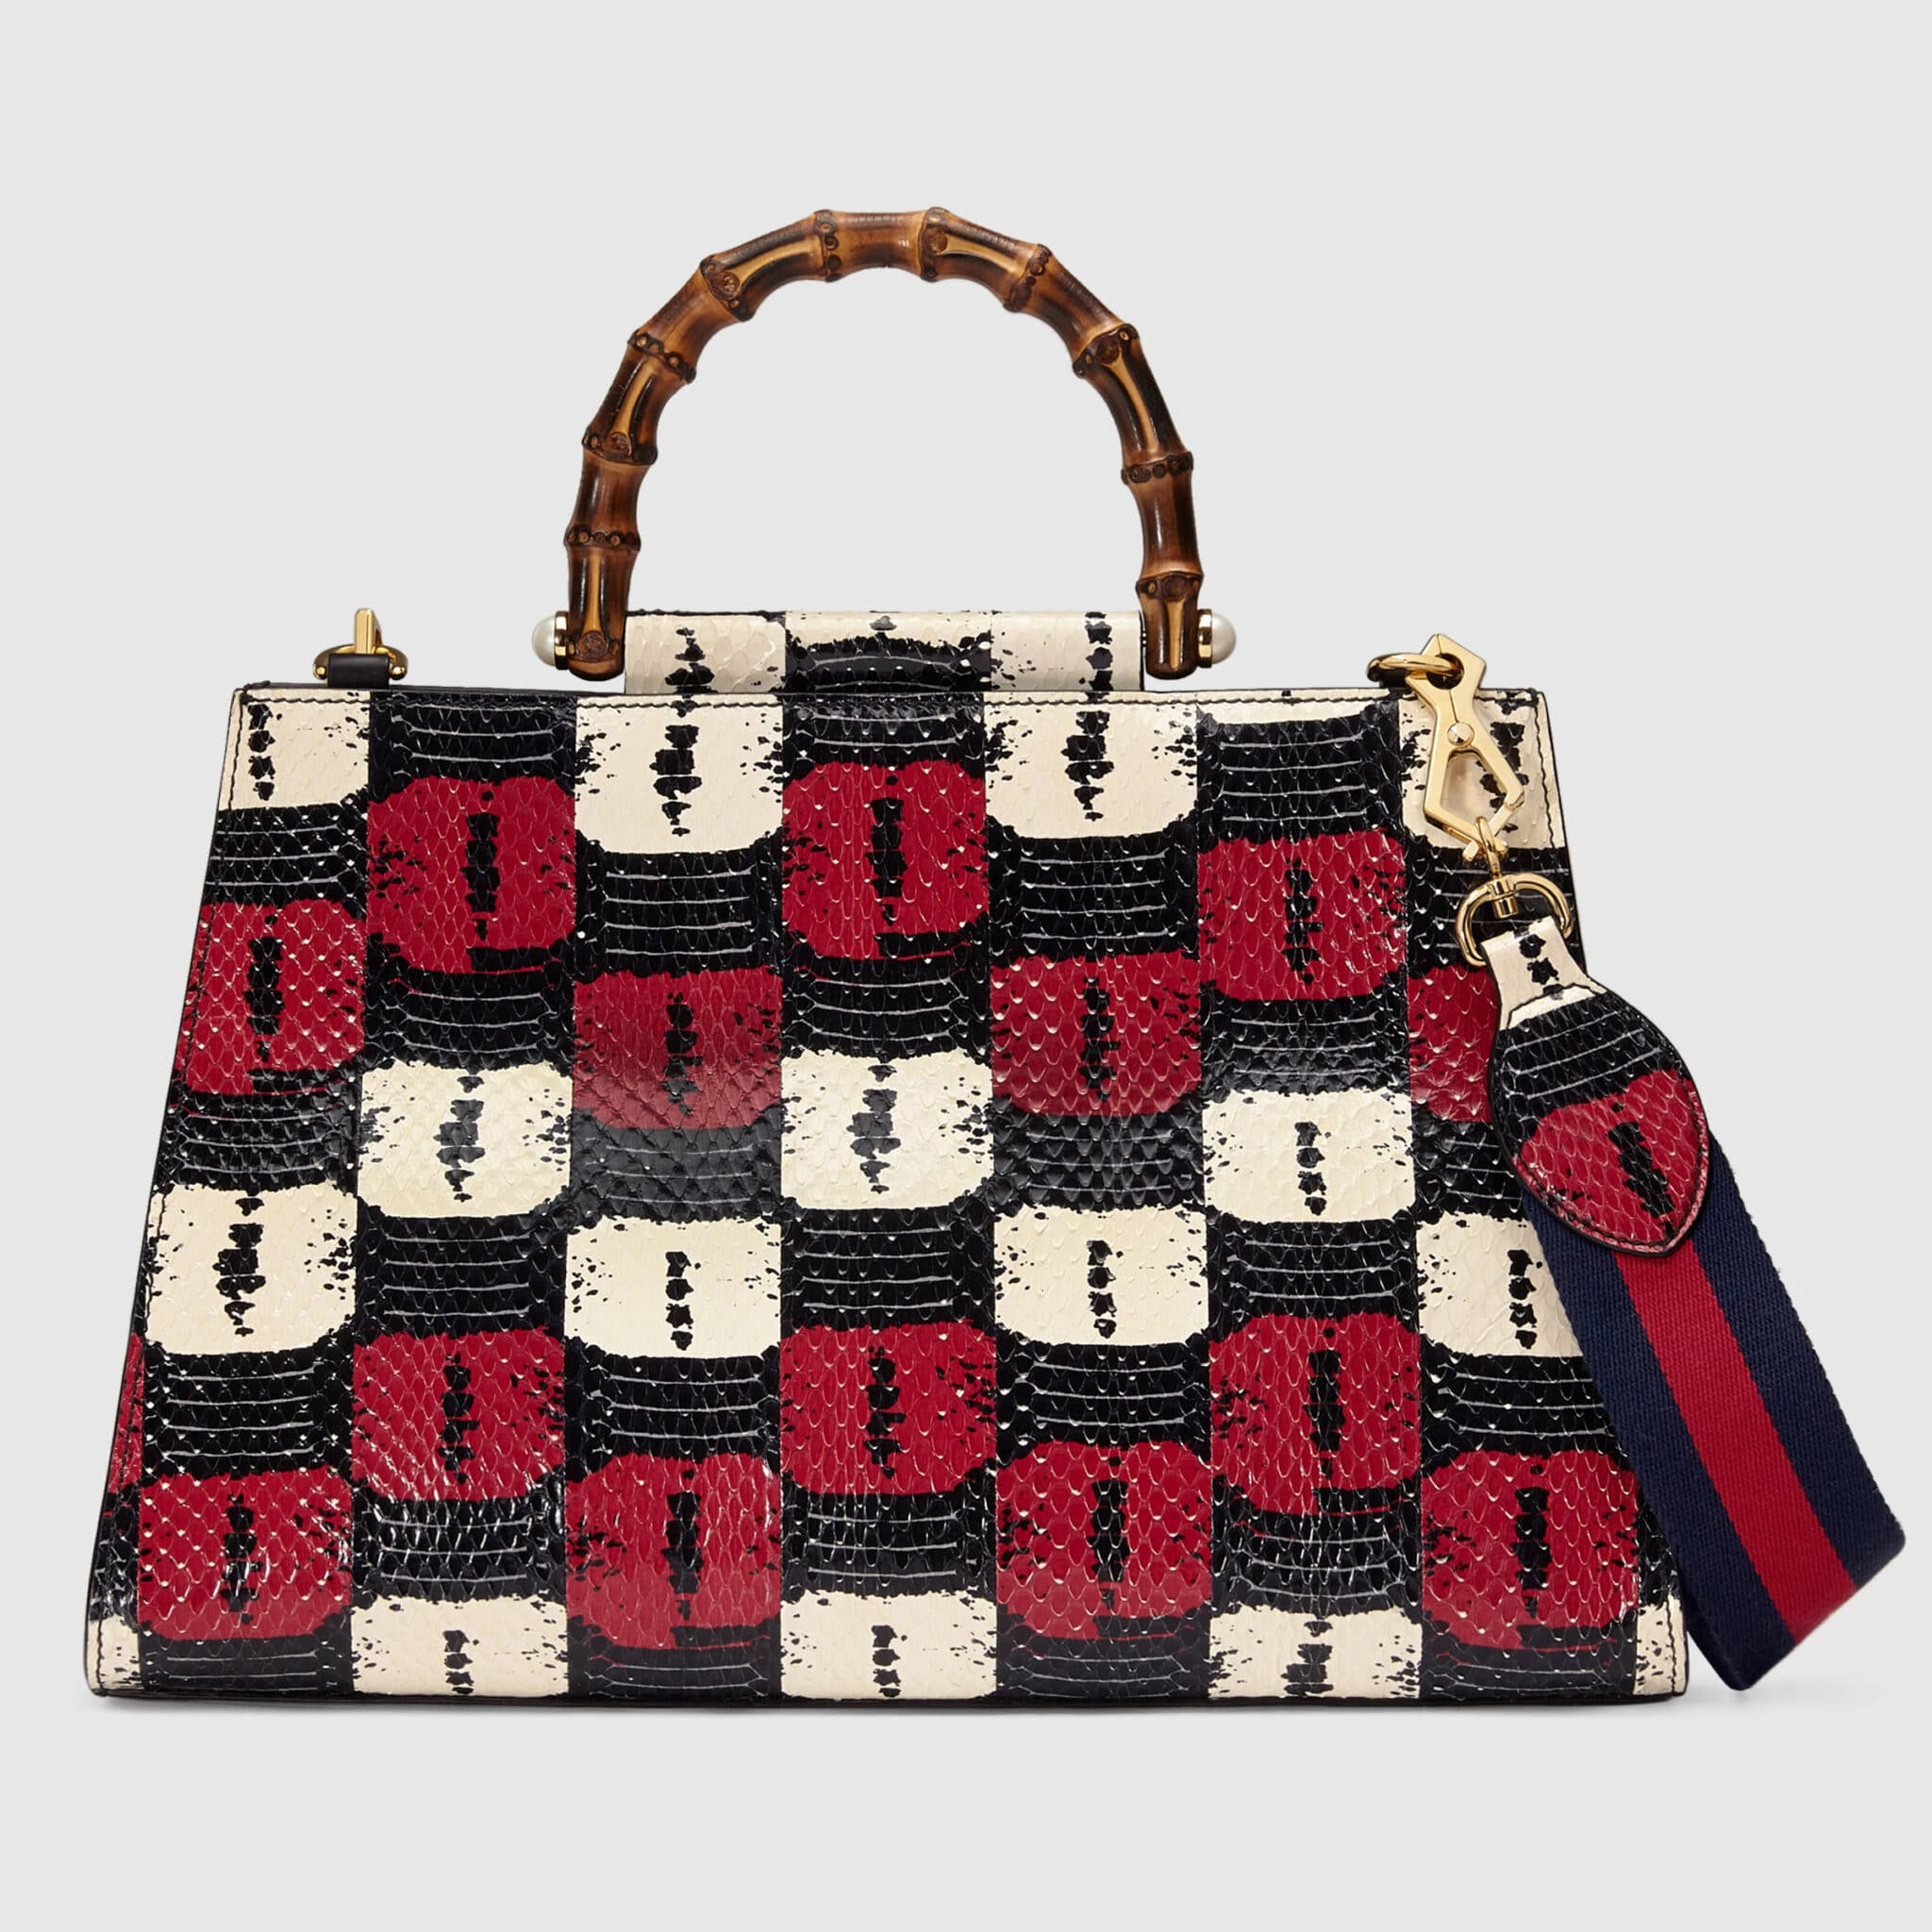 734240e38a0 Gucci Blue Red Printed Snakeskin Medium Nymphaea Top Handle Bag